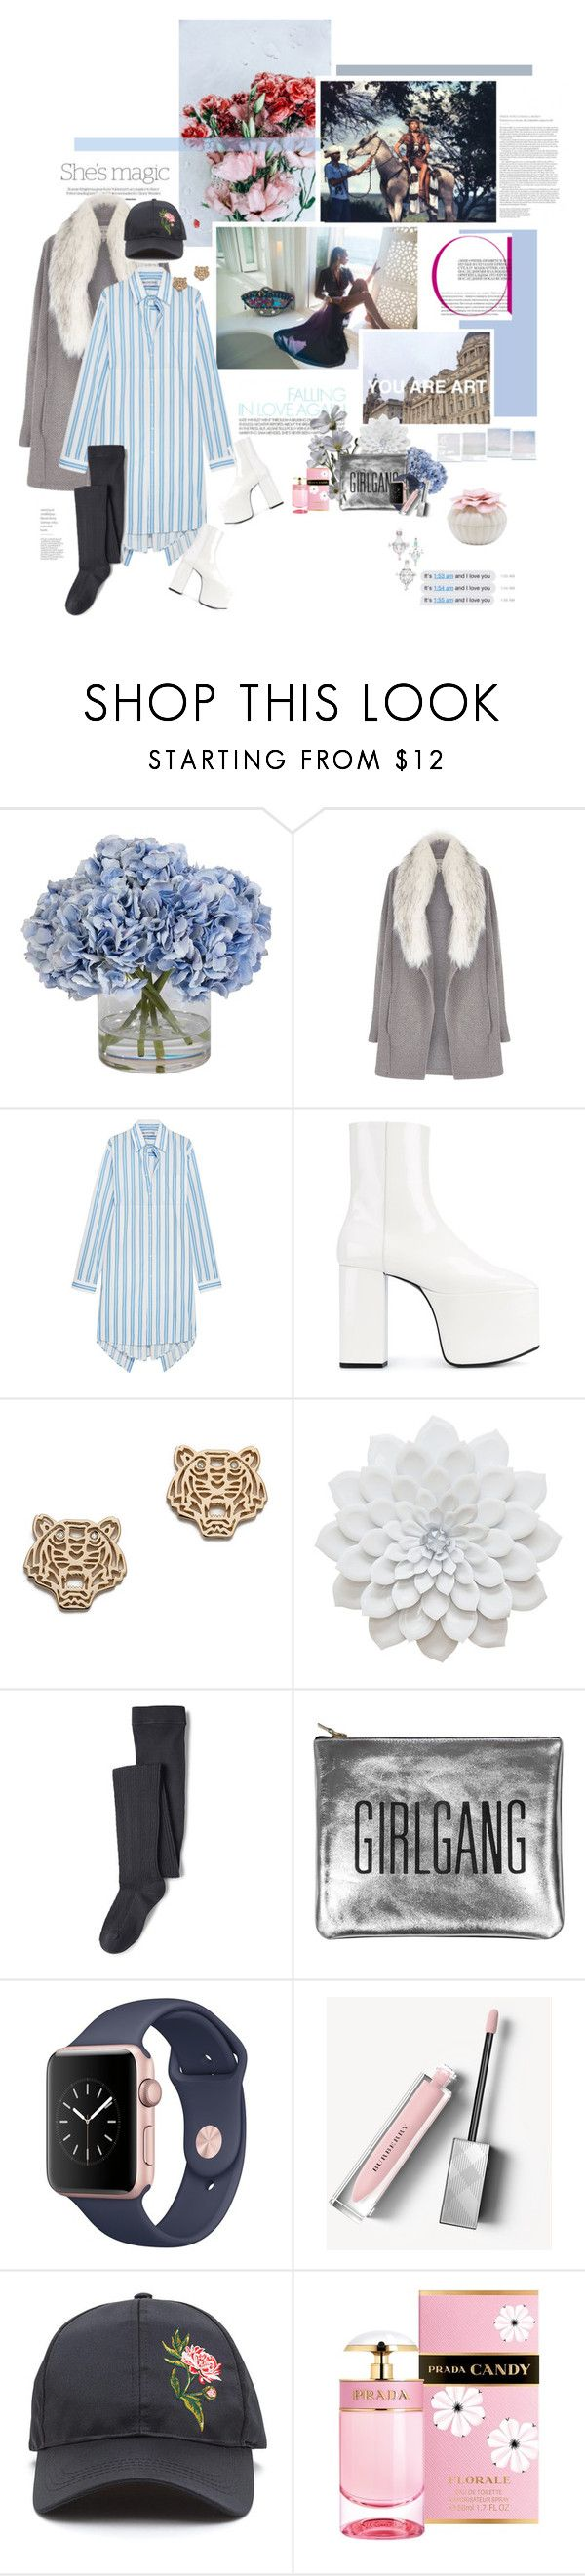 """CK 